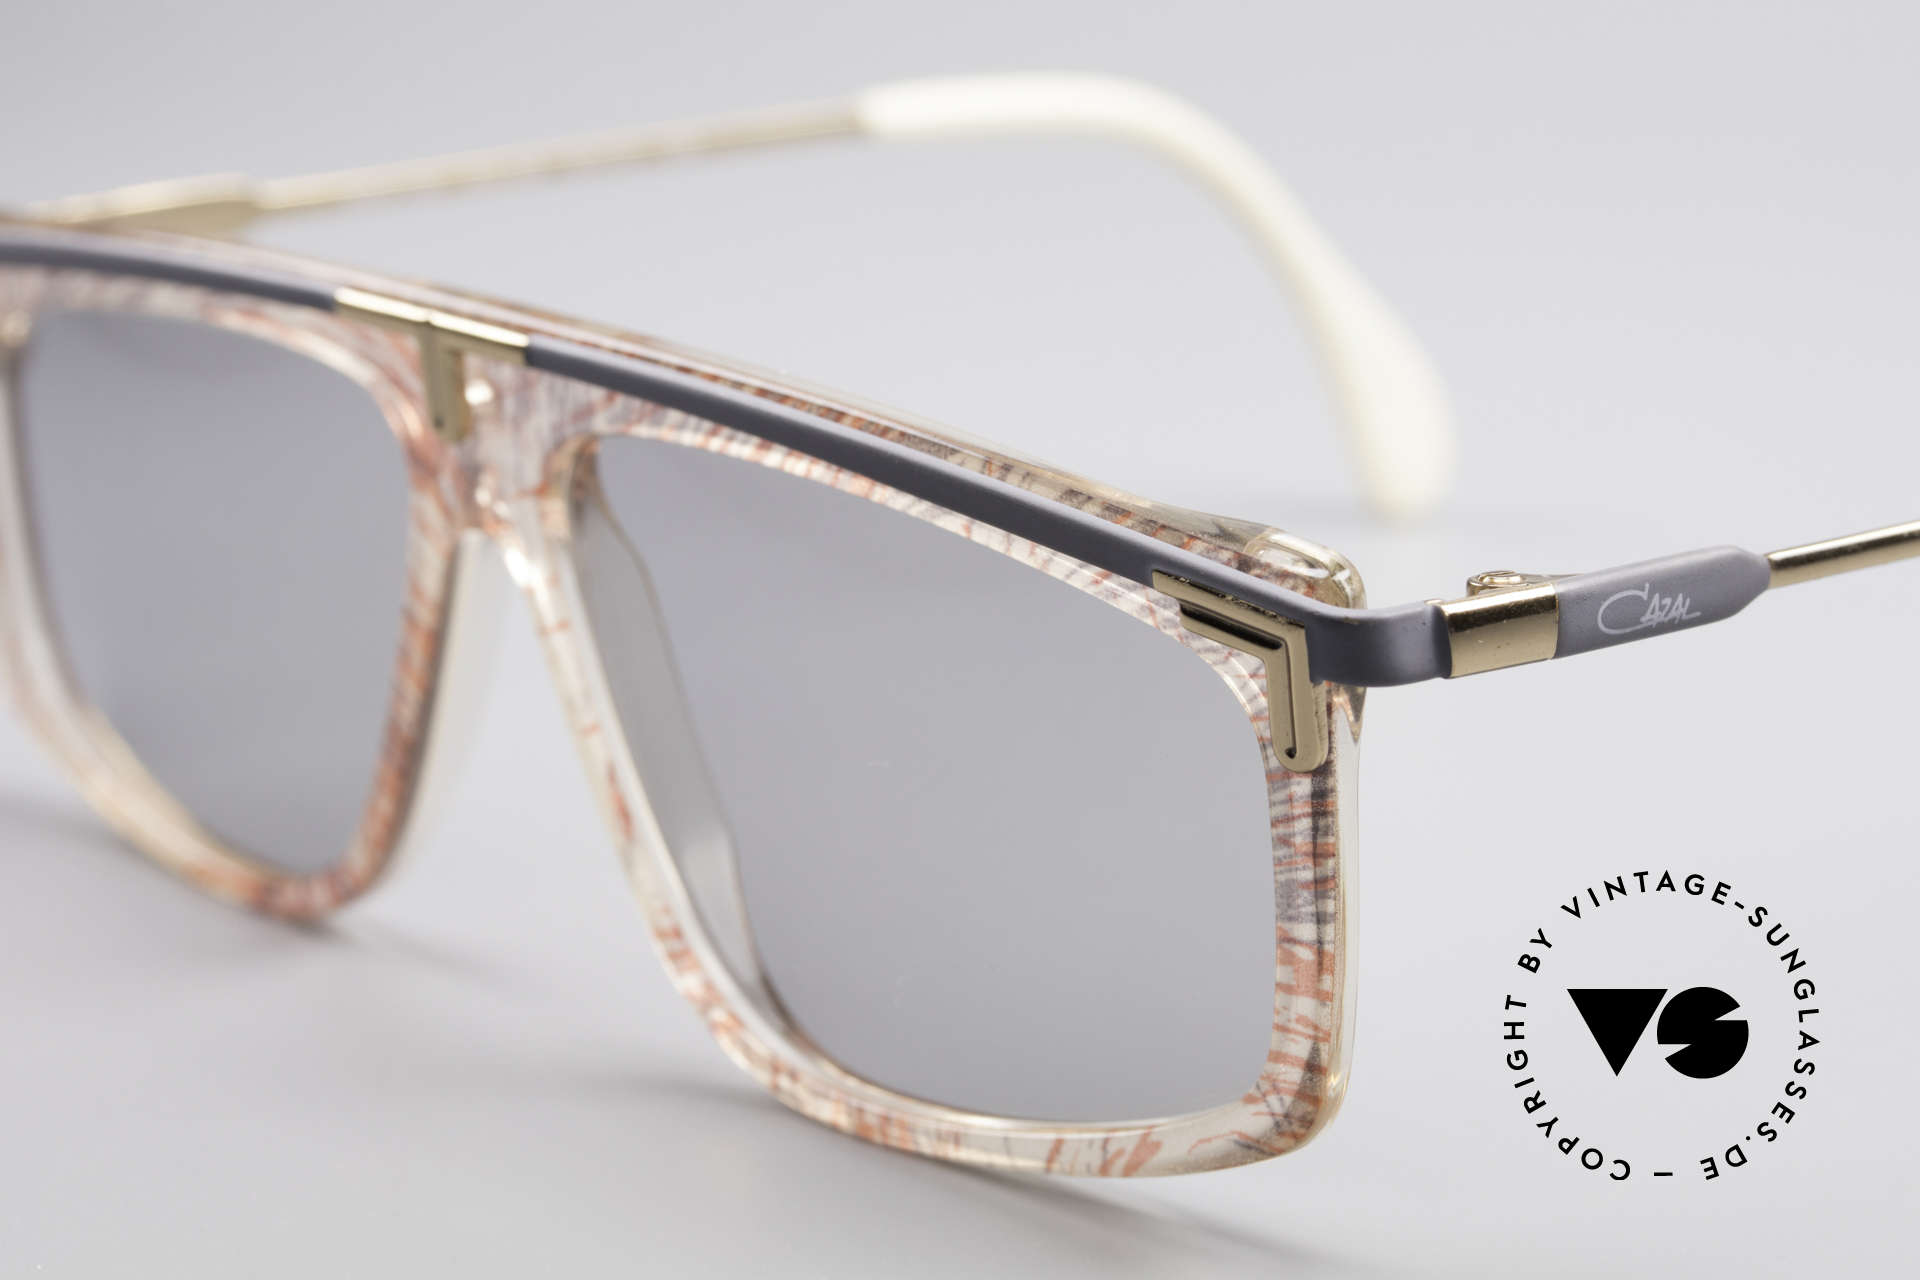 Cazal 190 Old School Hip Hop 1980's, unworn (like all our rare vintage 80's eyewear by Cazal), Made for Men and Women